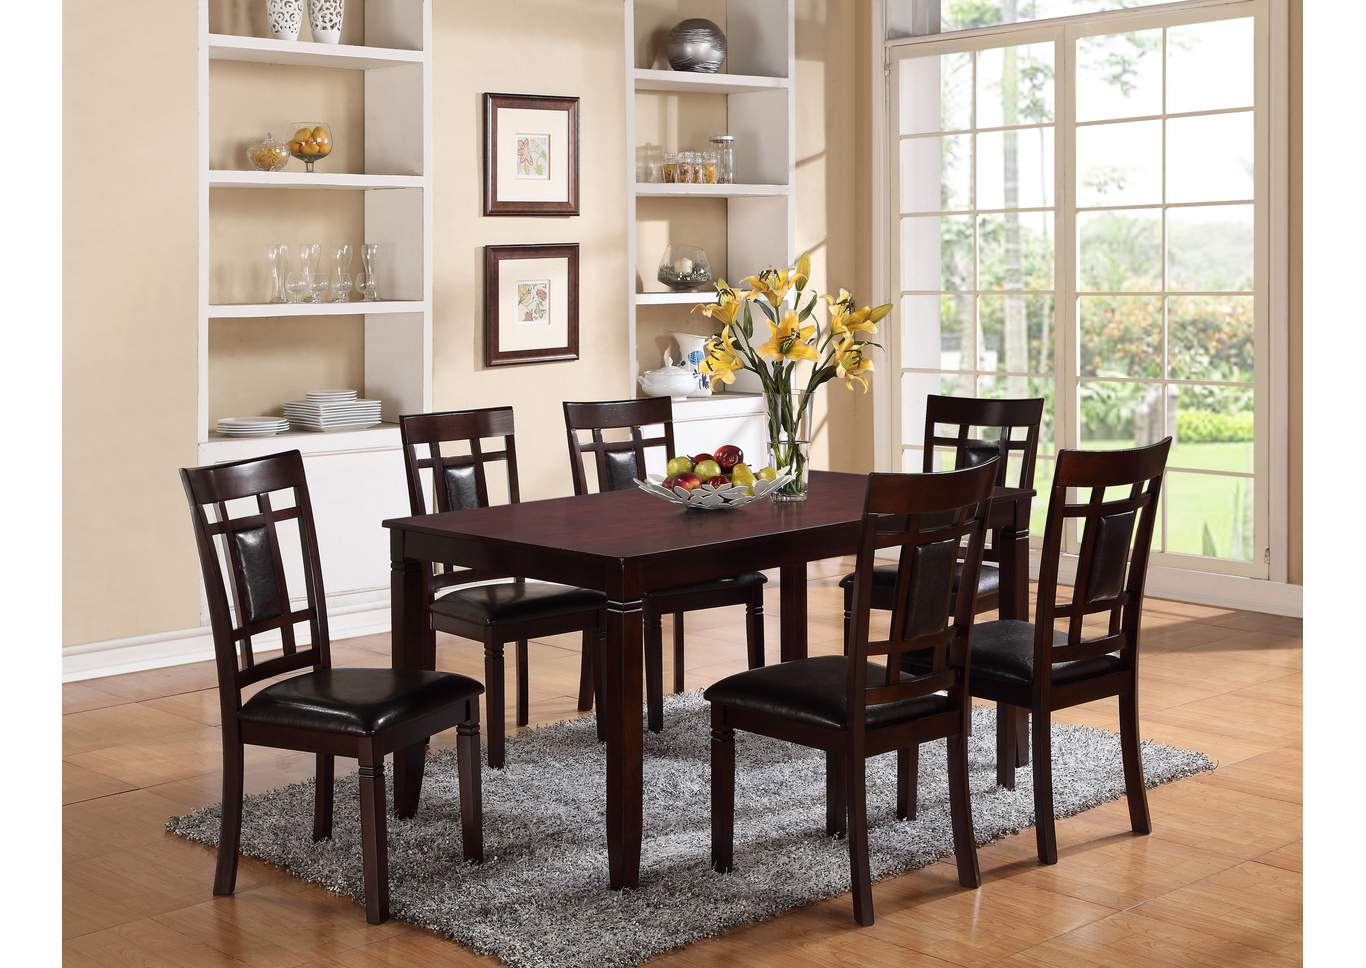 Paige Dinette Table w/6 Side Chairs,Crown Mark